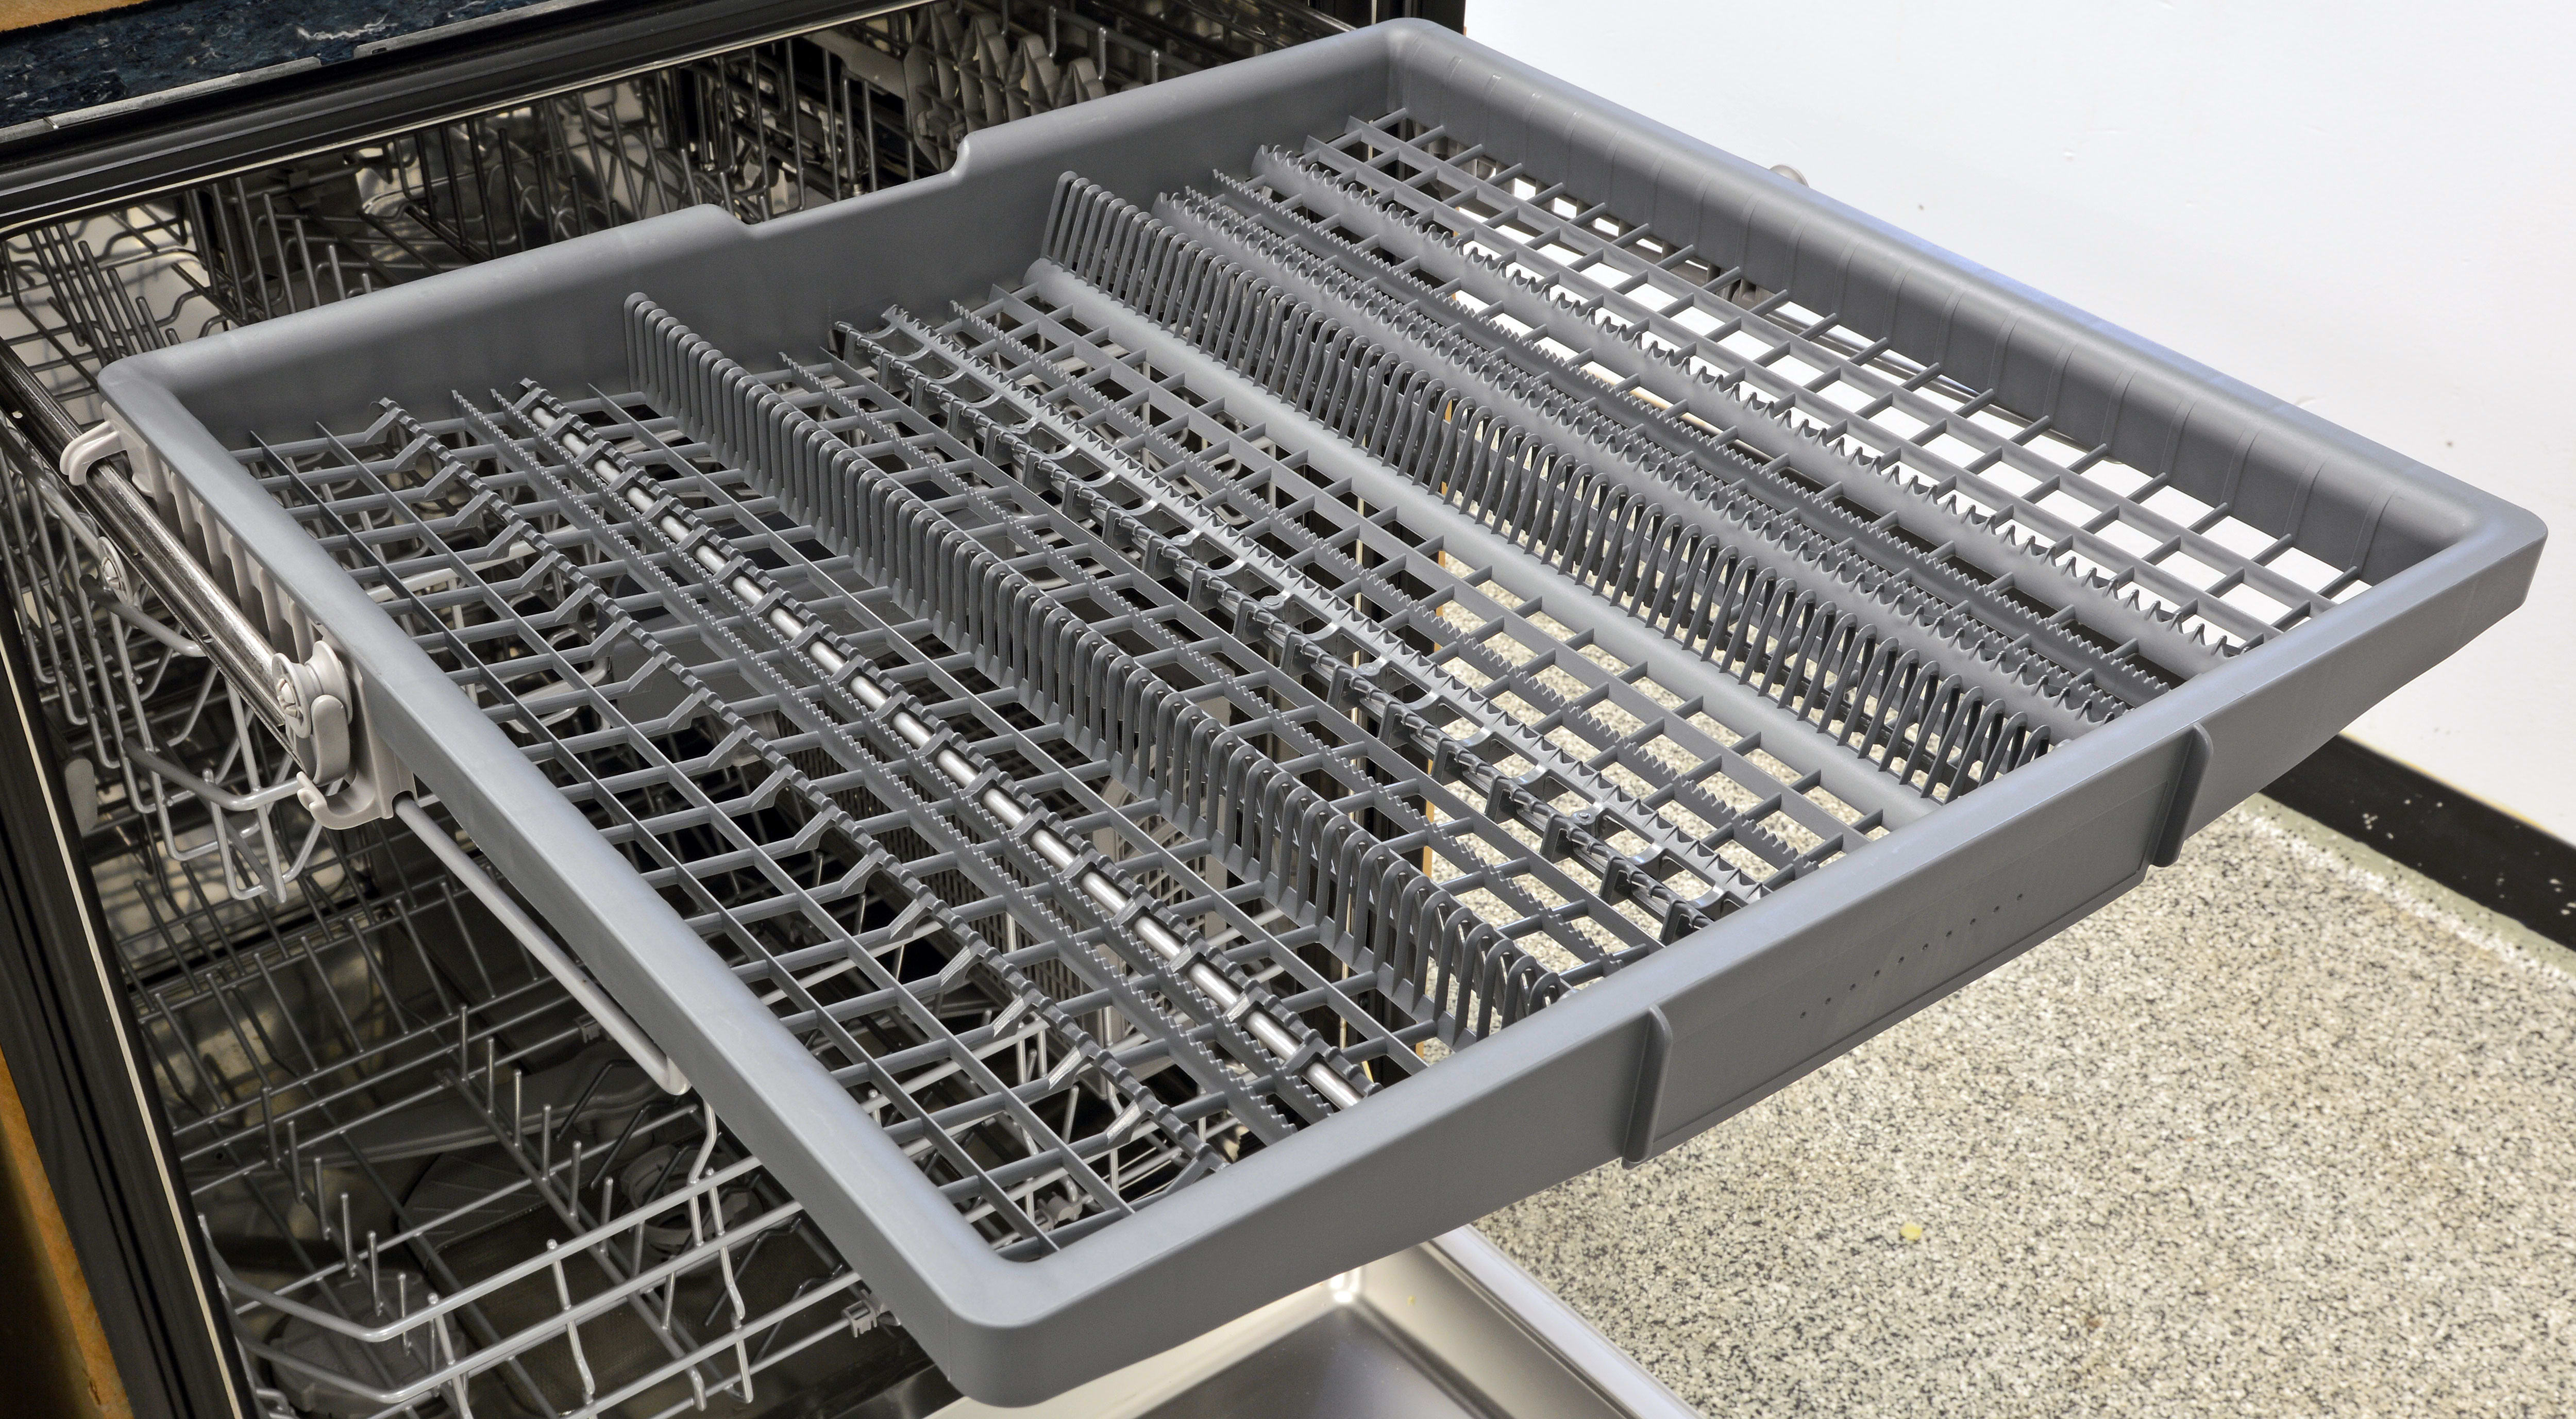 The 300 series—along with the Ascenta and 500 models—will all get this redesigned third rack. Instead of a flat tray, it angles down towards the center to let you wash other items like shallow bowls or certain types of stemware.